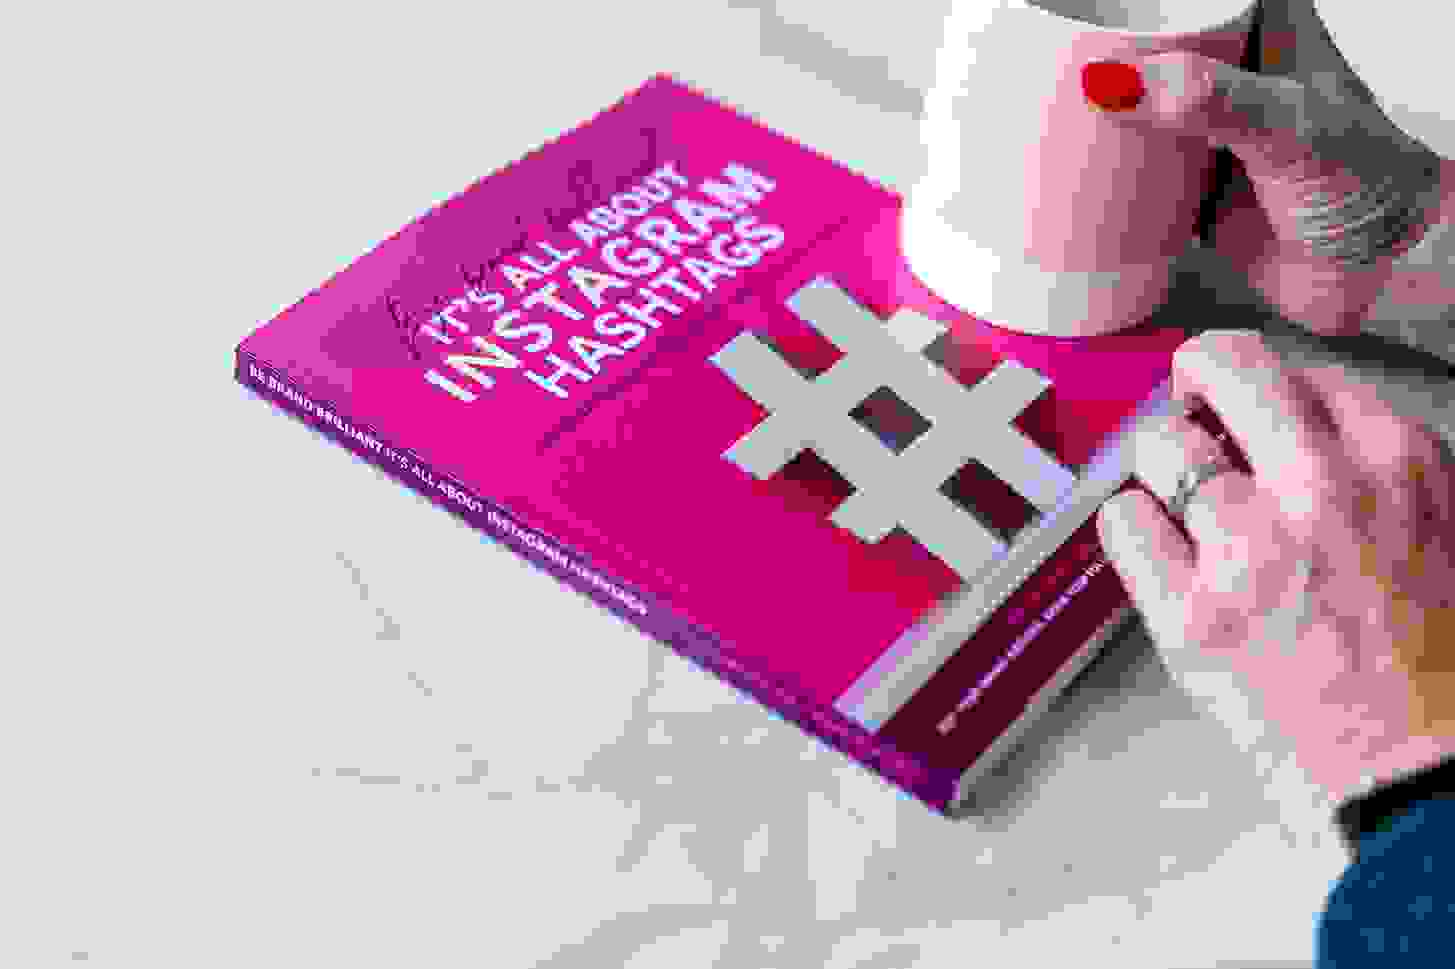 close up of It's all about Instagram hastags book with ladies hand holding a pink mug